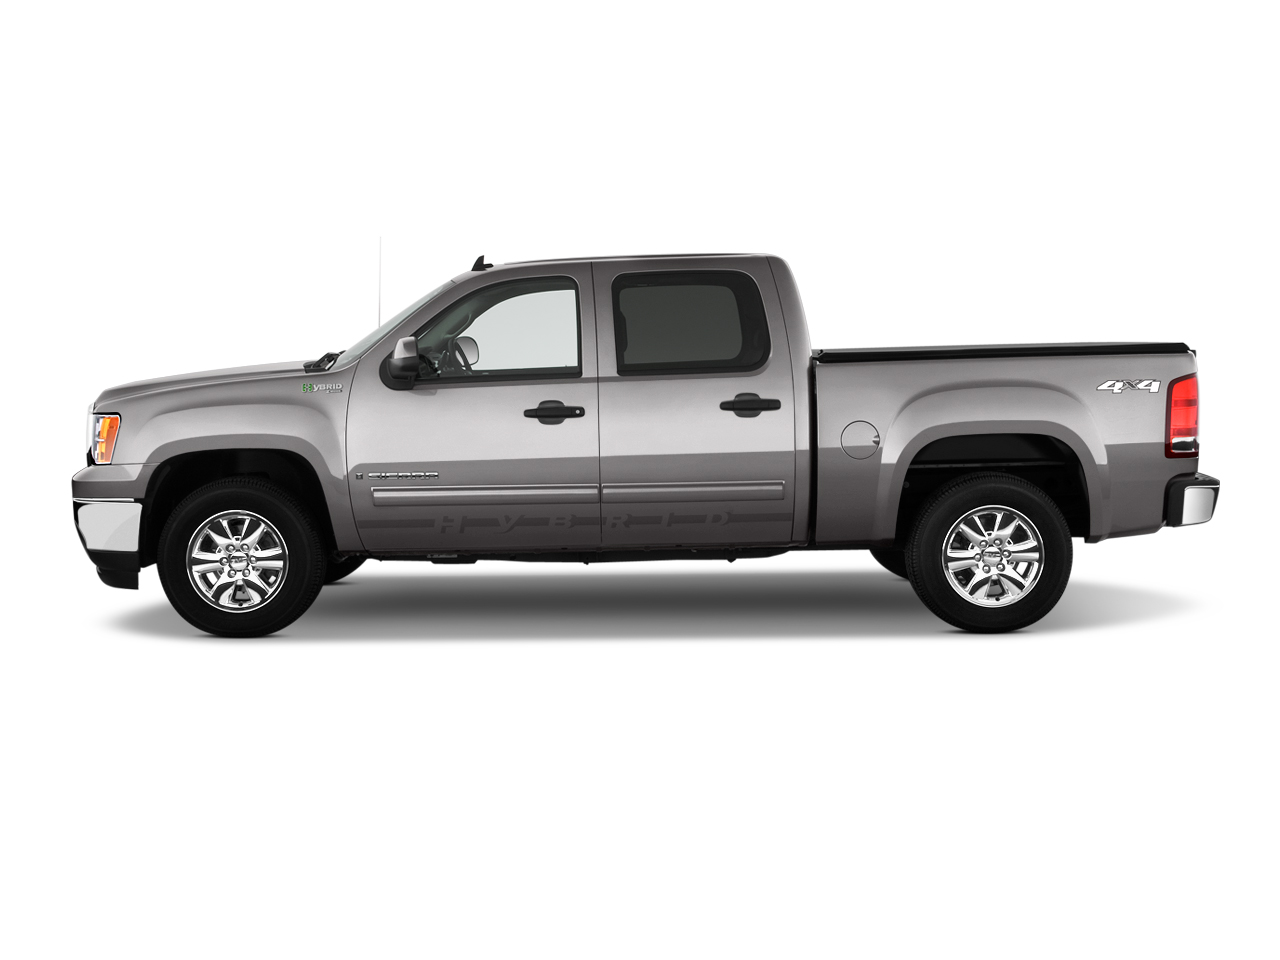 2010 Gmc Sierra 1500 Hybrid Review Ratings Specs Prices And Photos The Car Connection